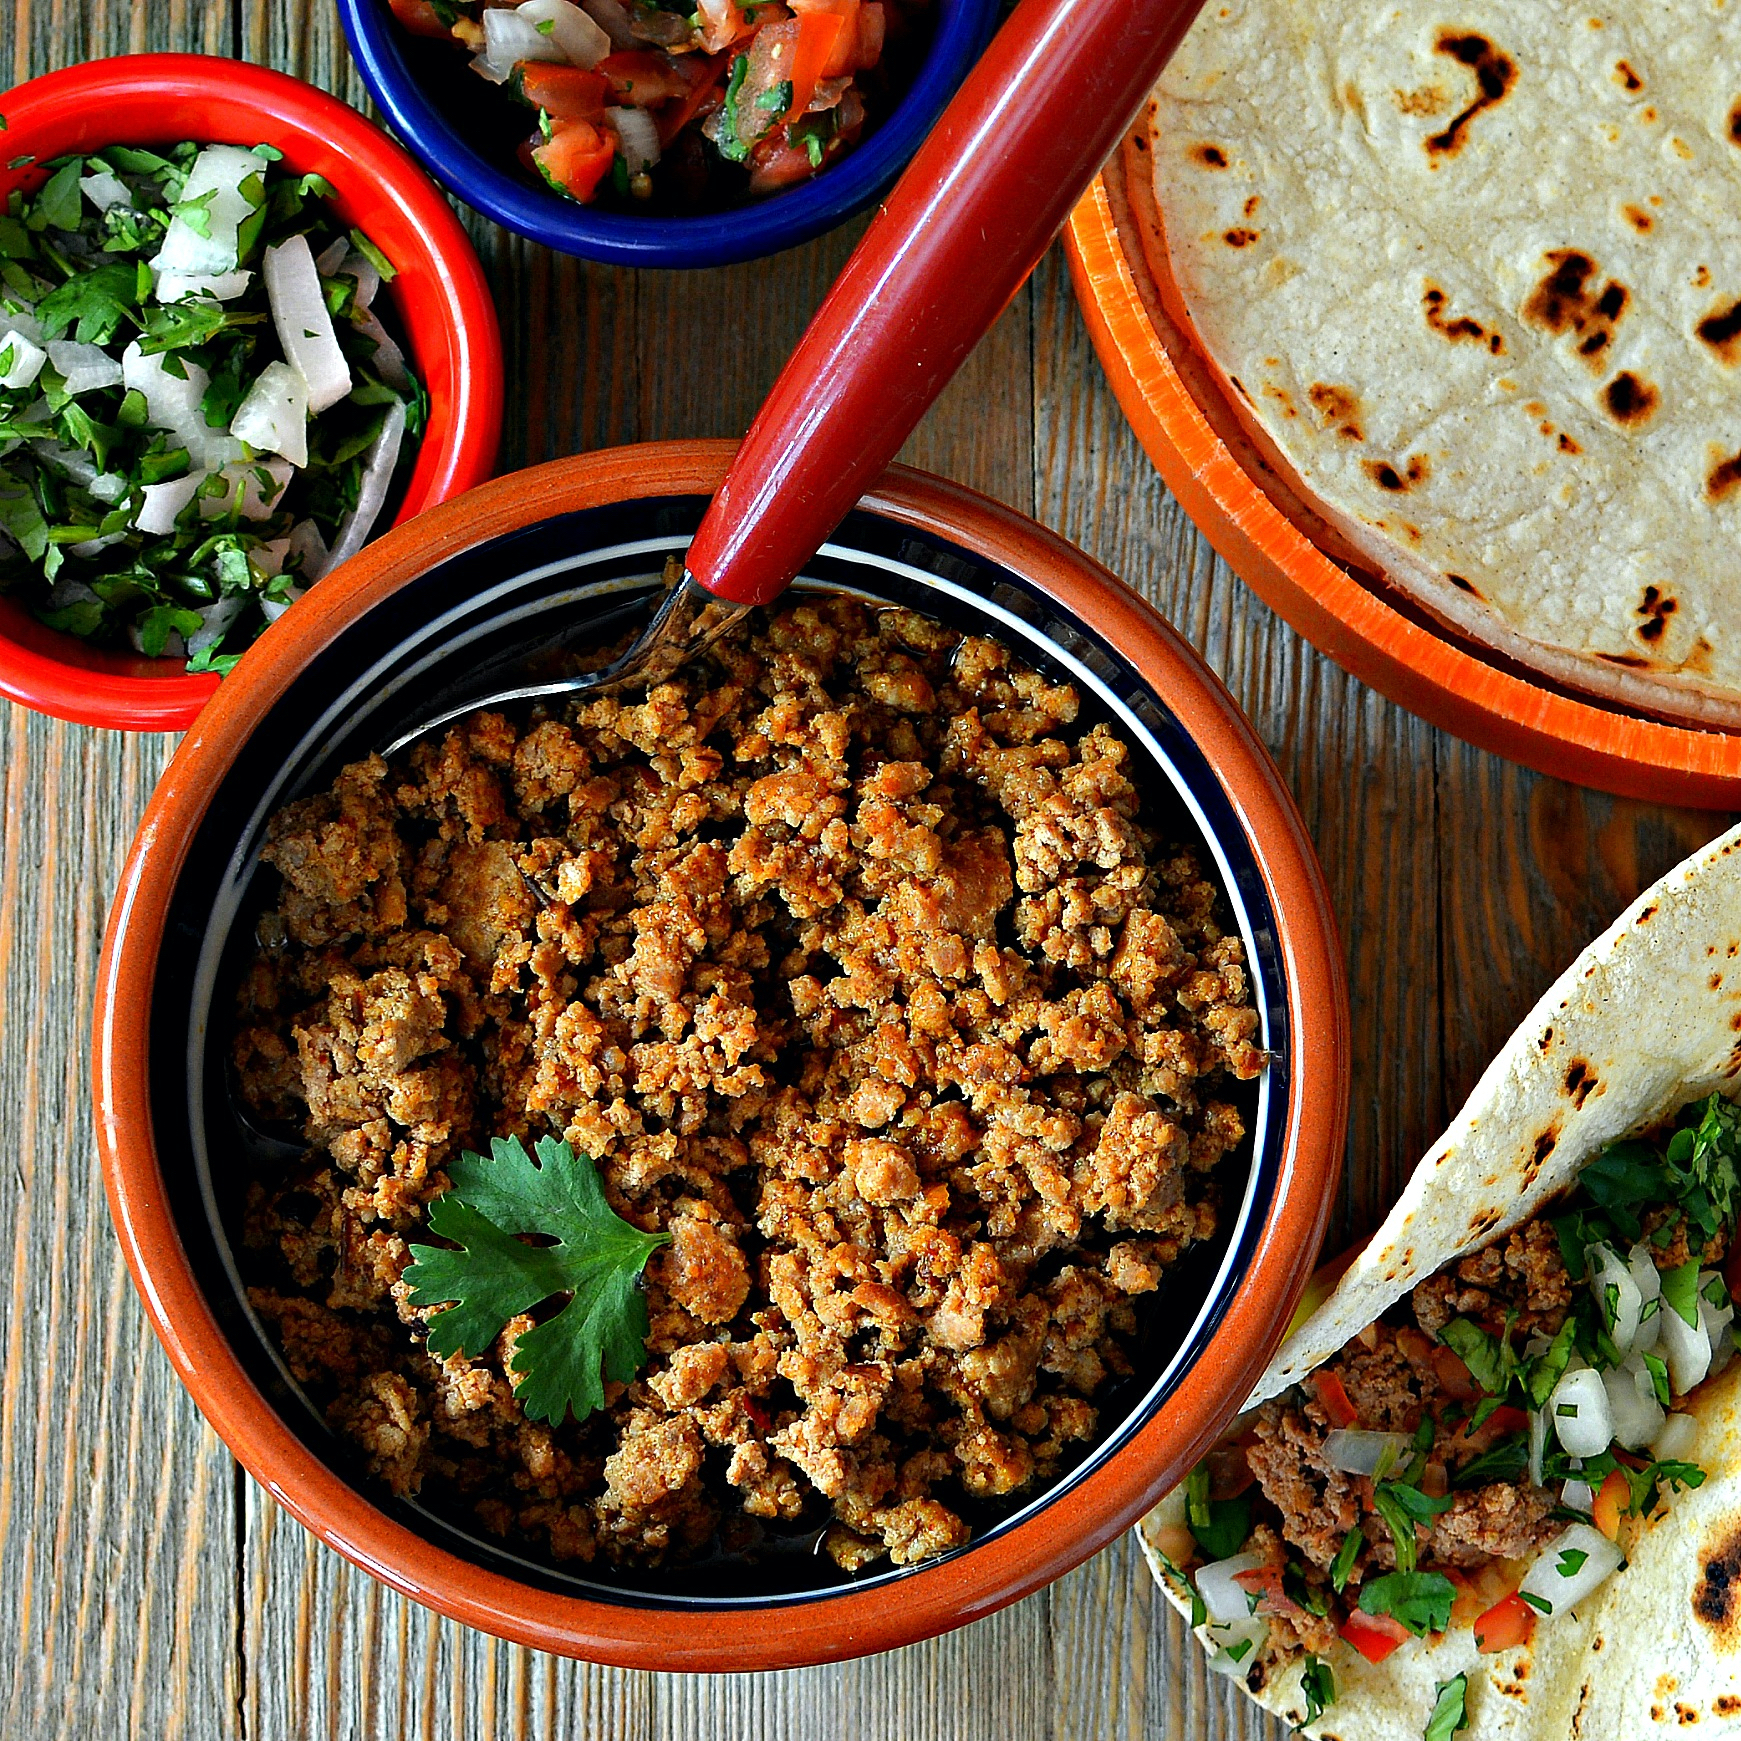 ground turkey in a red bowl with tortillas and garnishes